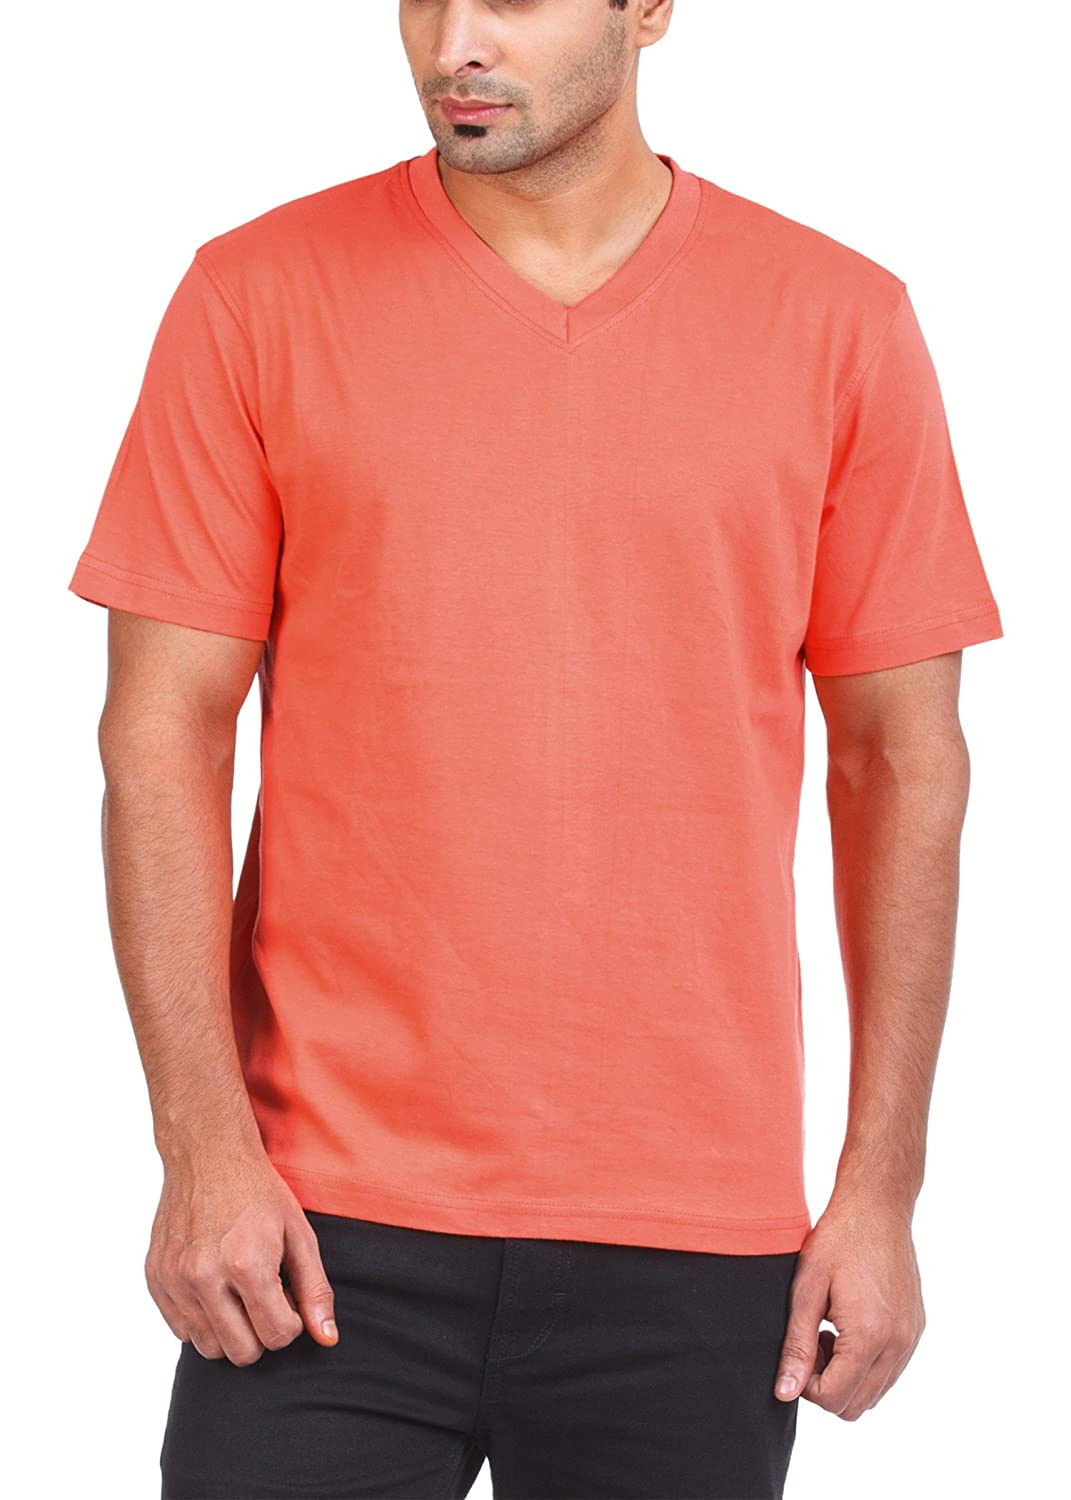 bd21199f Zovi Men's Cotton Clay Red Solid V-neck T-shirt. Rs.135/-